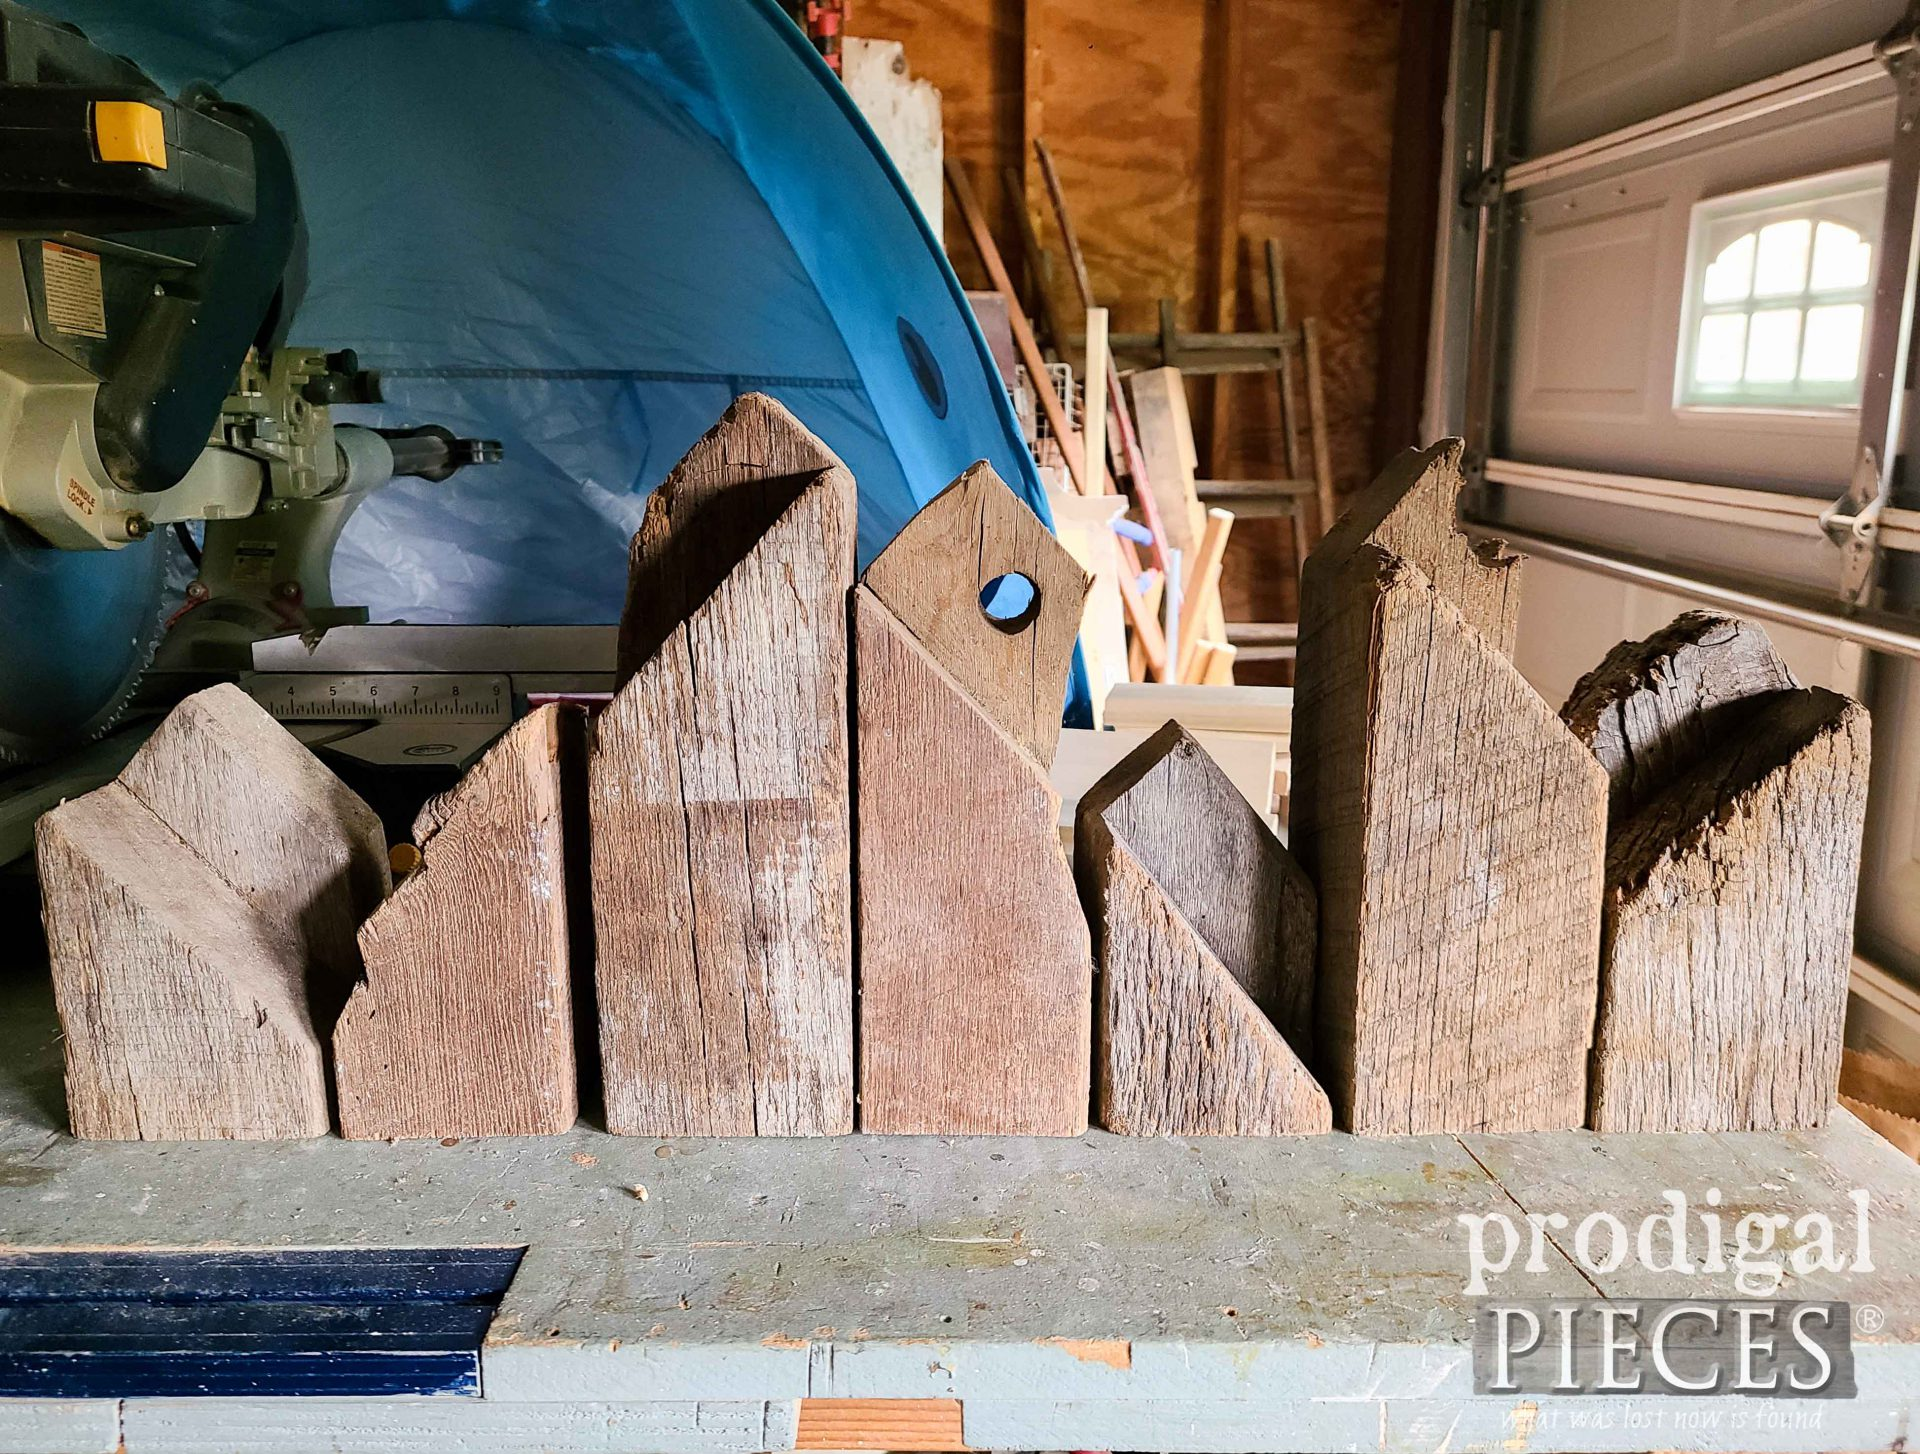 Reclaimed Wood Houses Setup in Raw | prodigalpieces.com #prodigalpieces